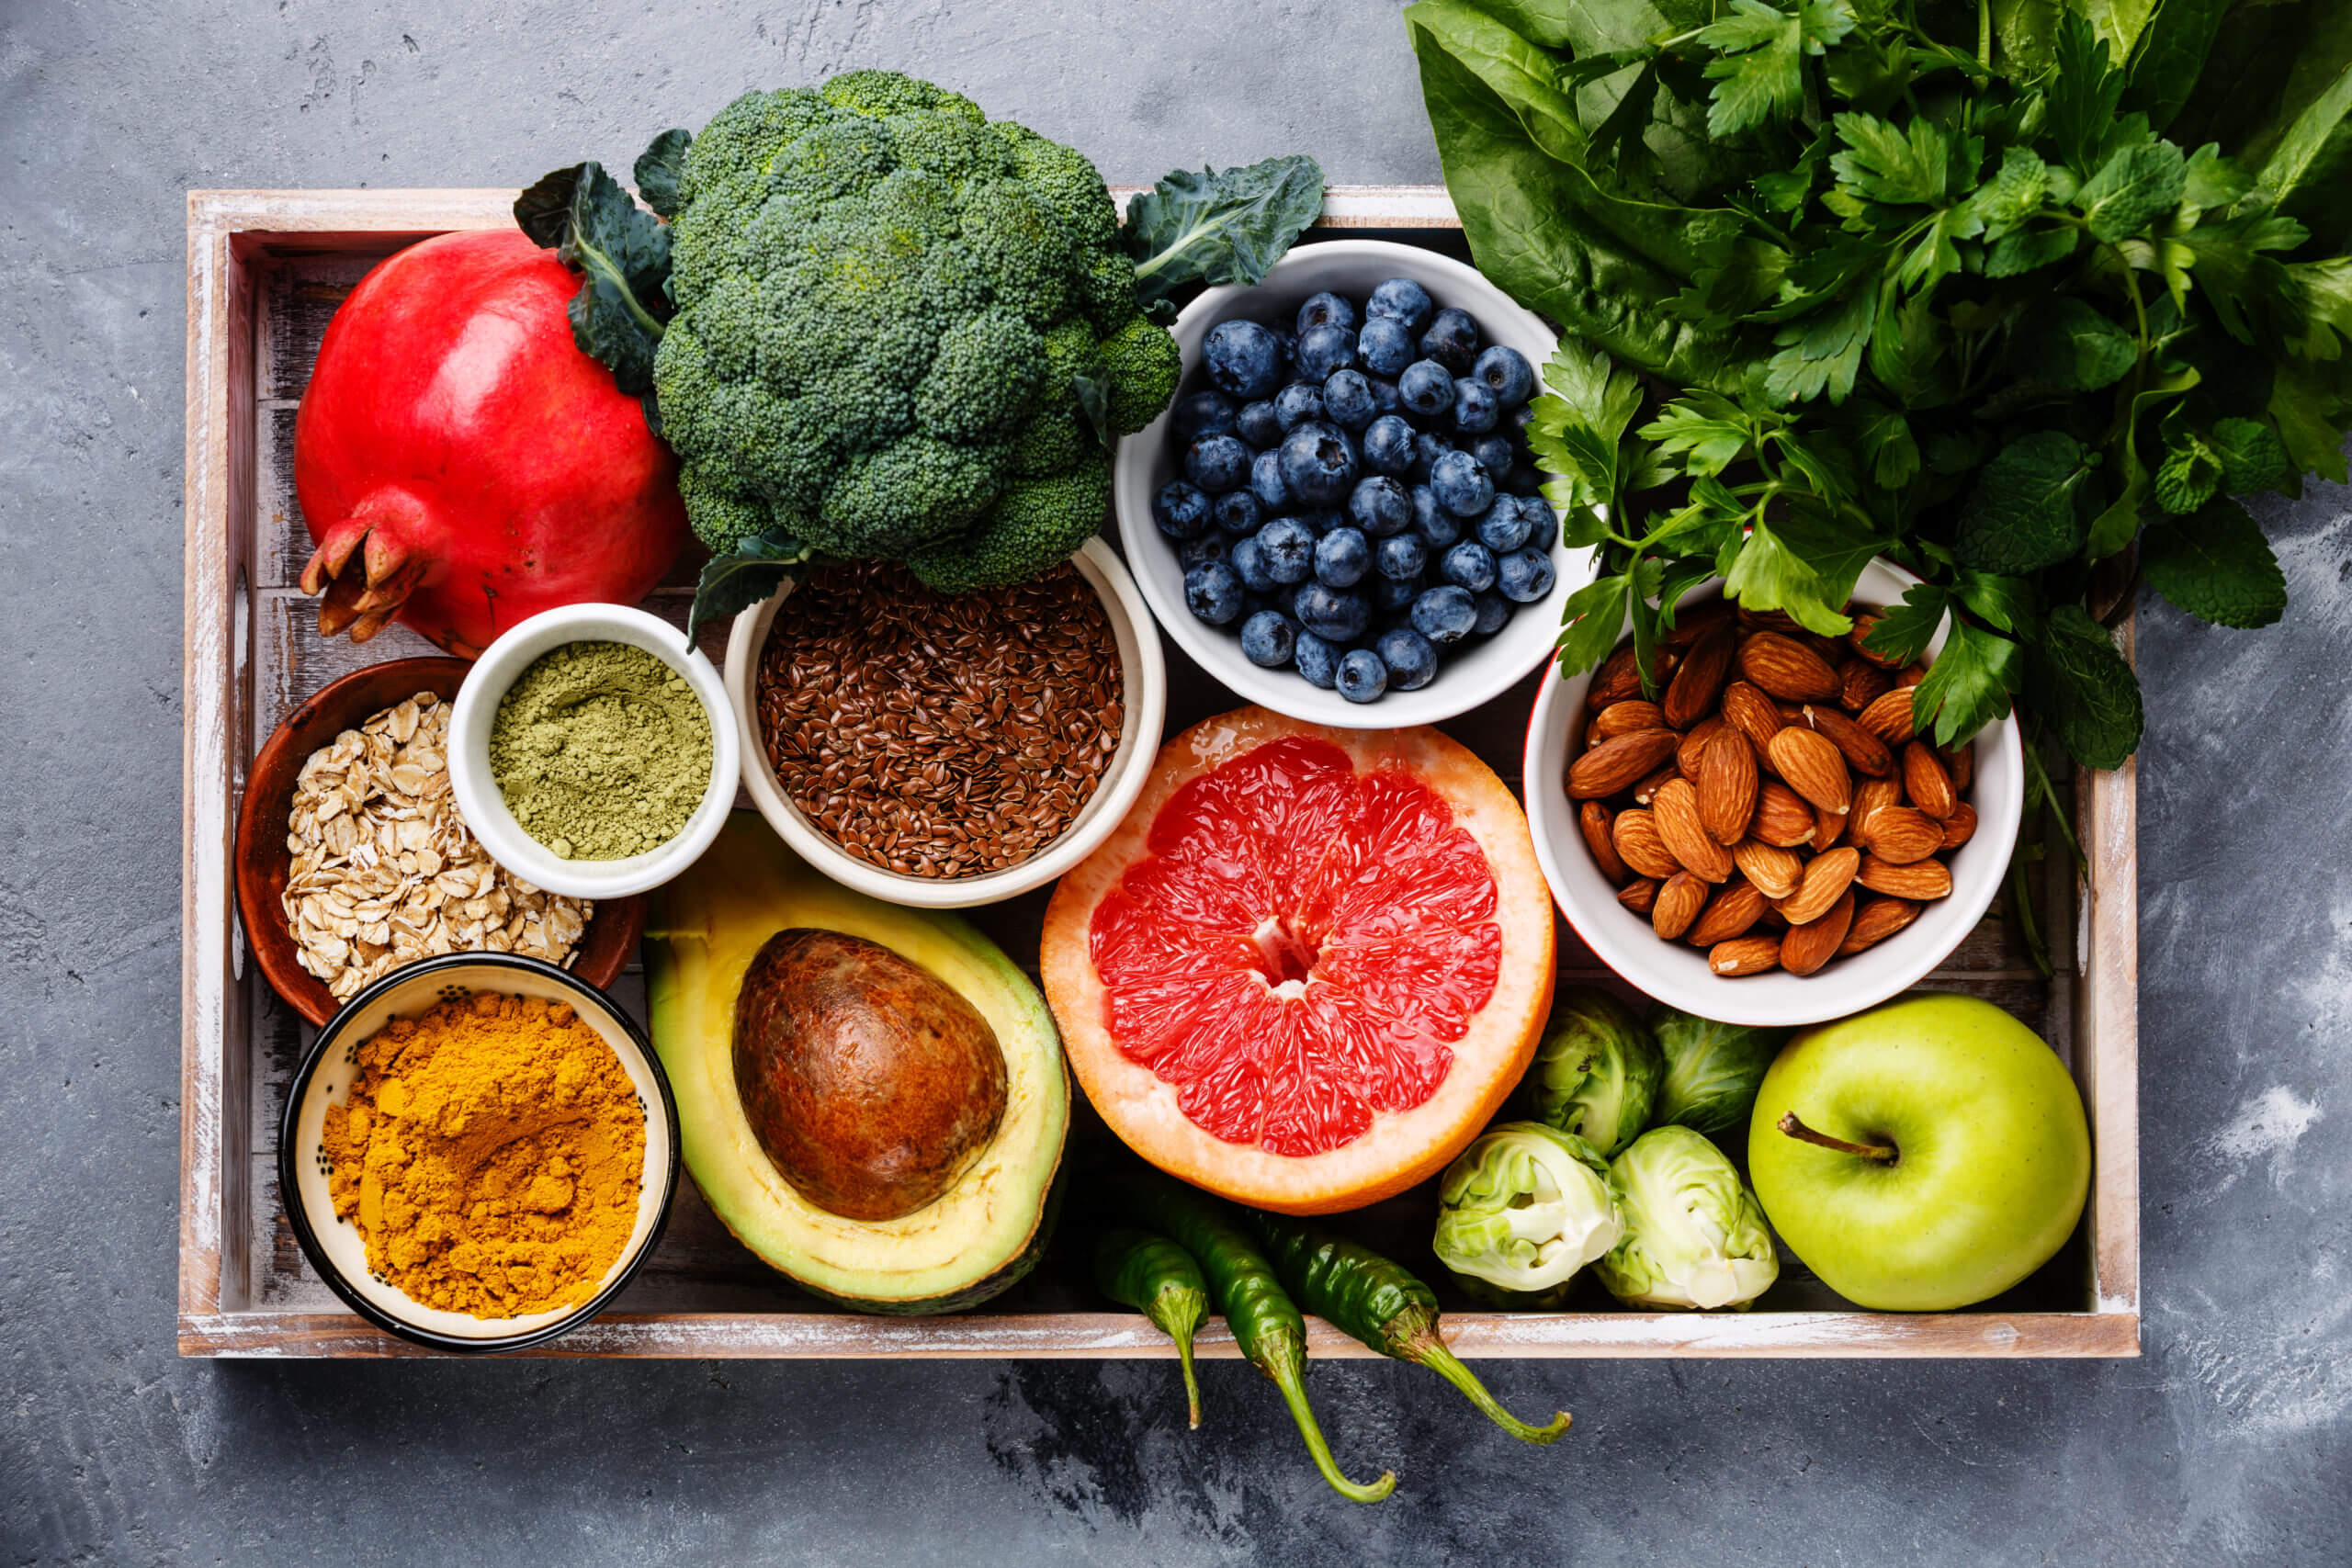 Best 4 books to Get Initiated on a Whole-food Plant-based DietBest 4 books to Get Initiated on a Whole-food Plant-based Diet by Sanza's Kitchen